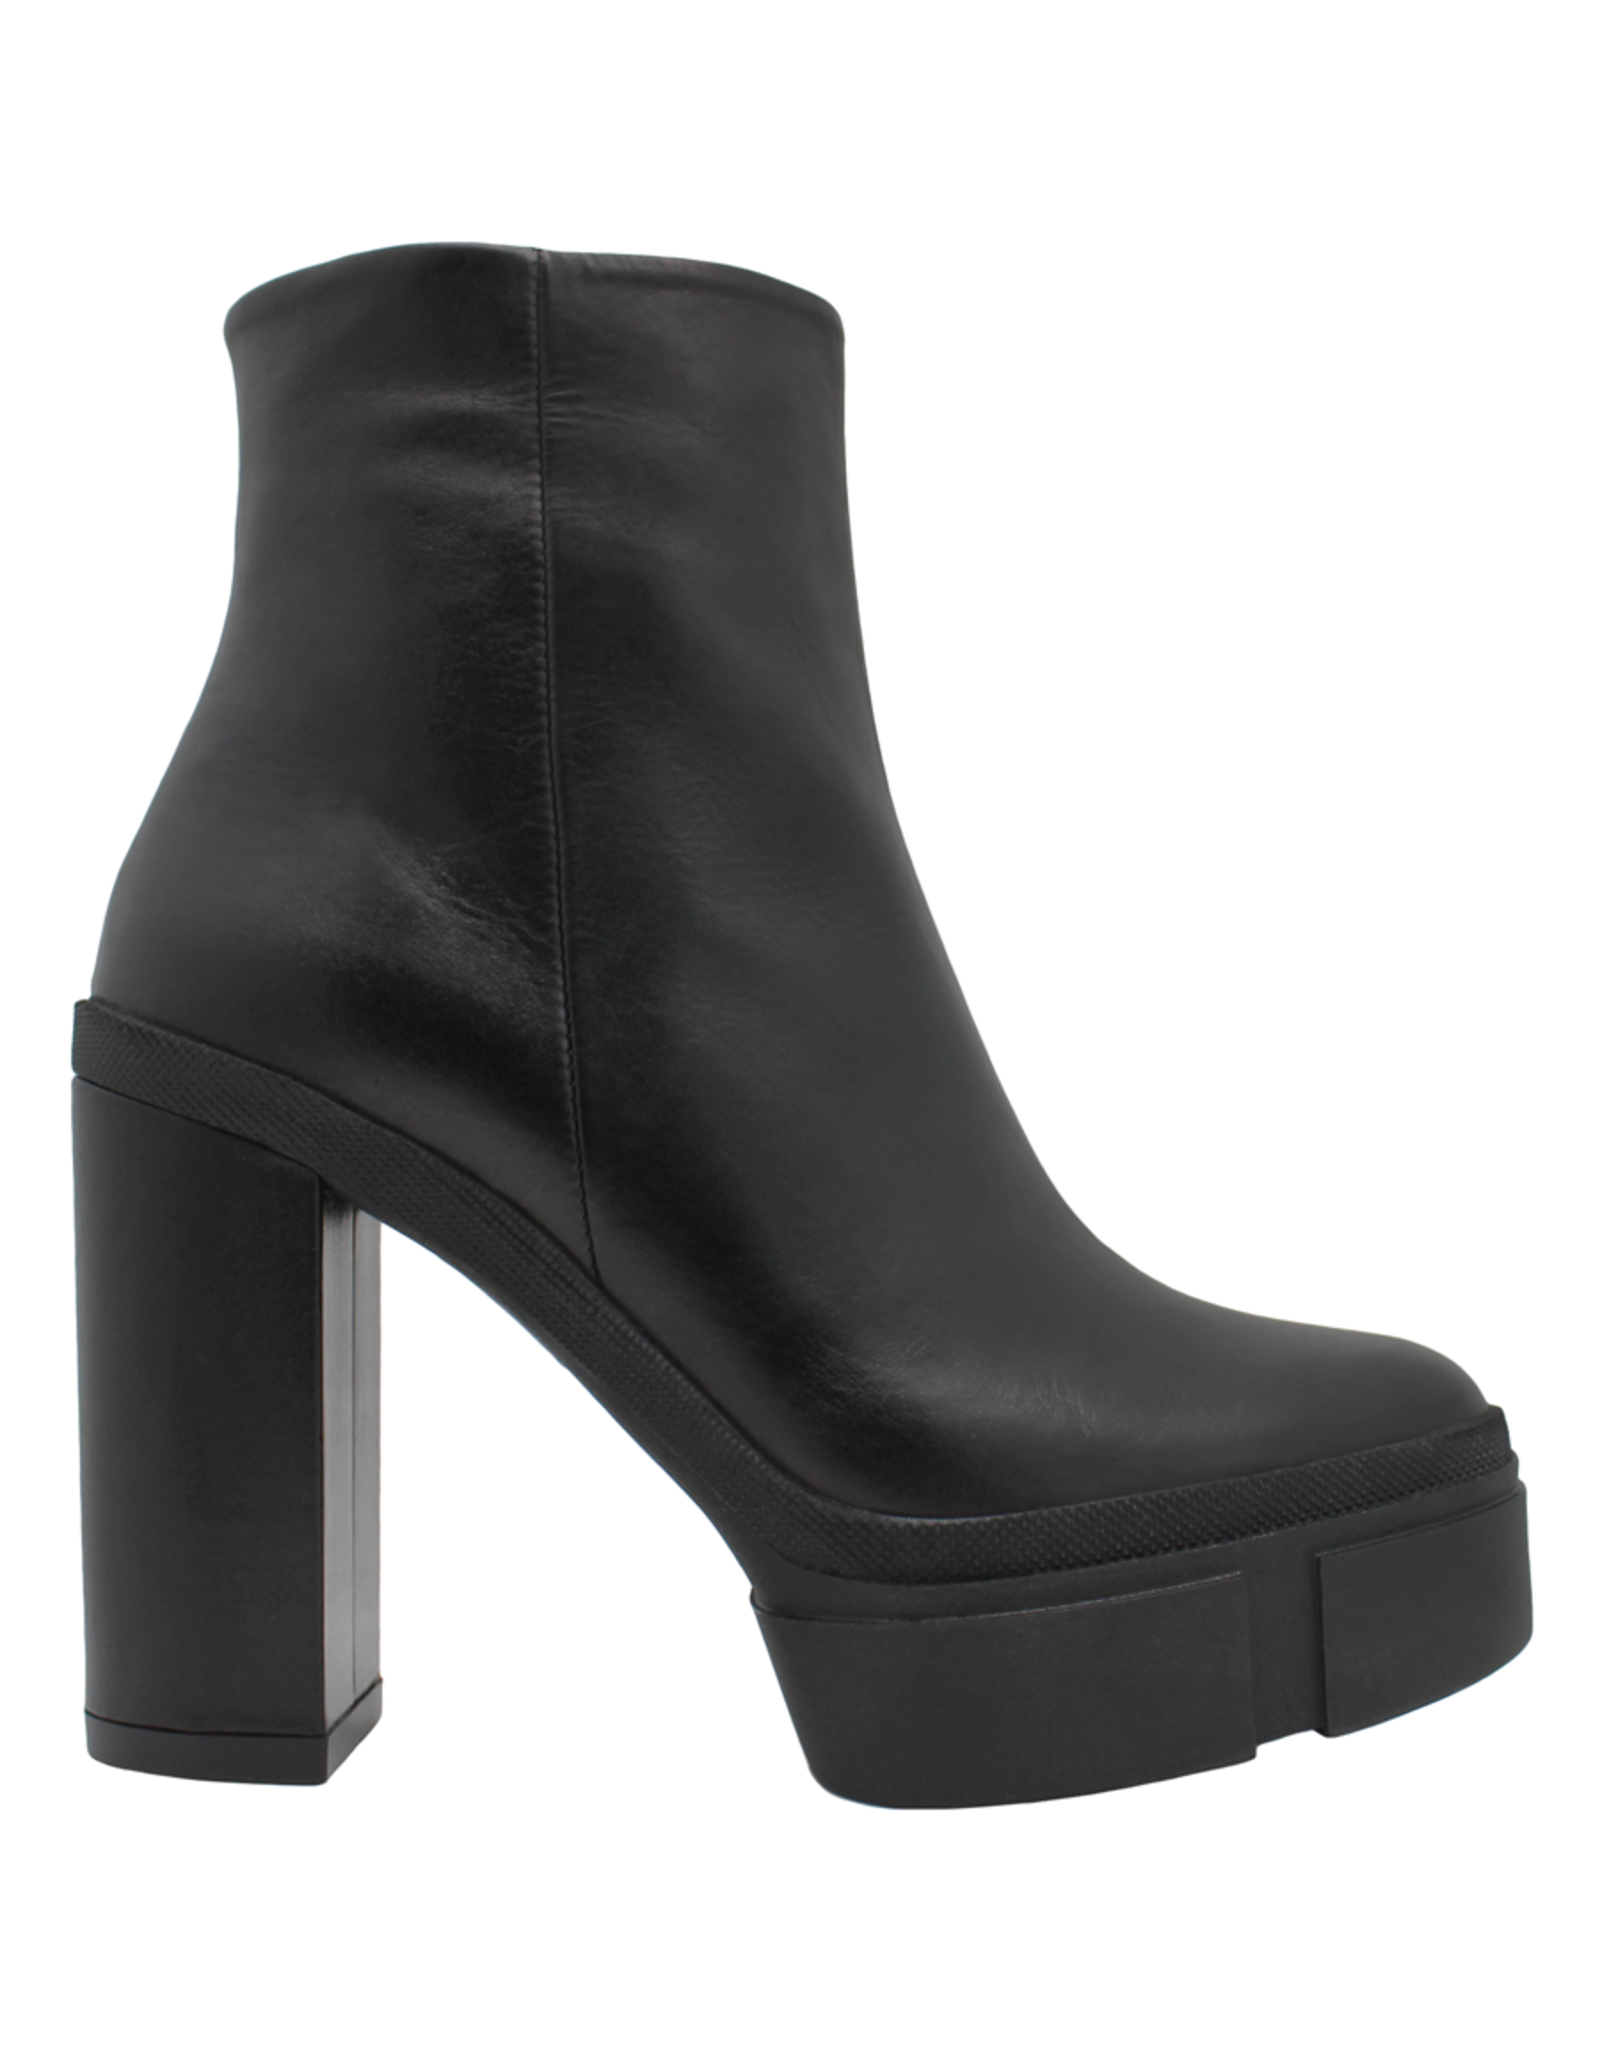 VicMatie VicMatie Black Platform Ankle Boot With Side Zipper 7878